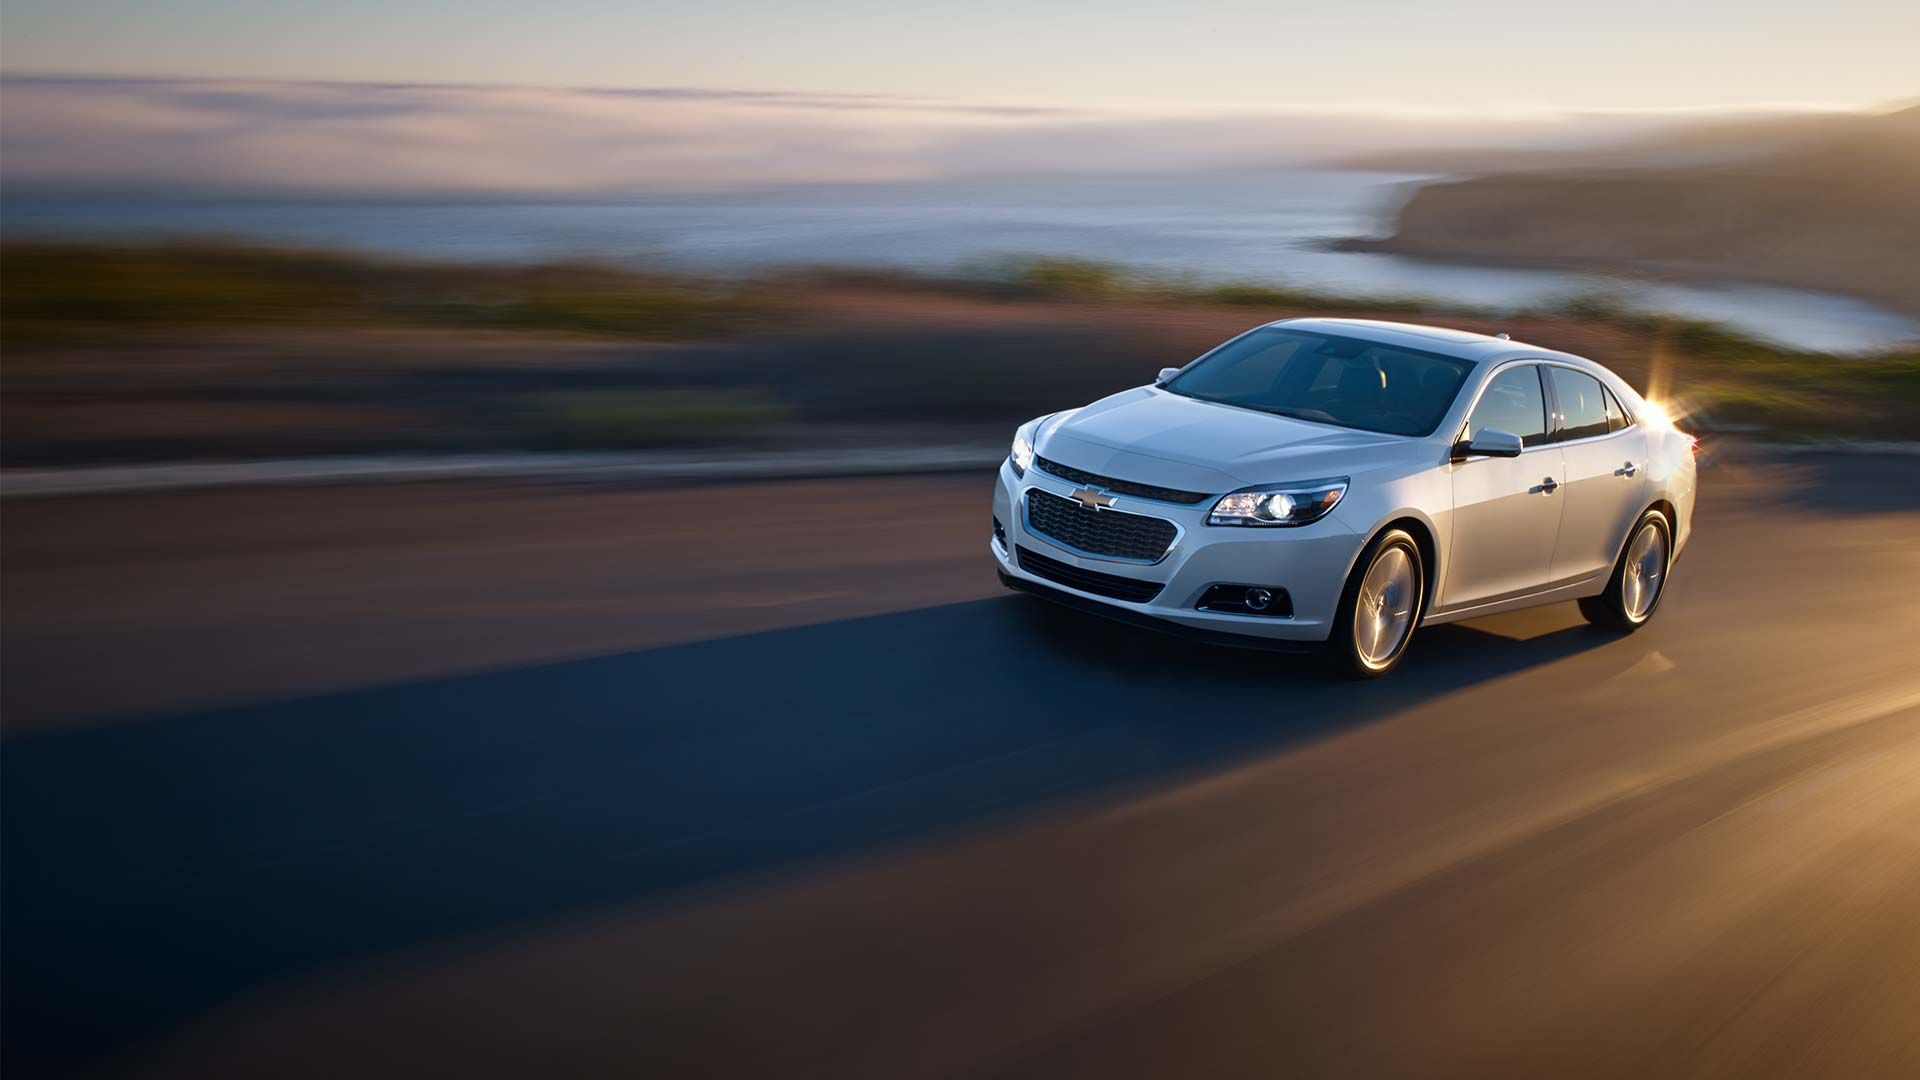 The 2015 Chevy Malibu Looks Great From Every Angle Chevrolet Malibu Malibu Car Mid Size Car